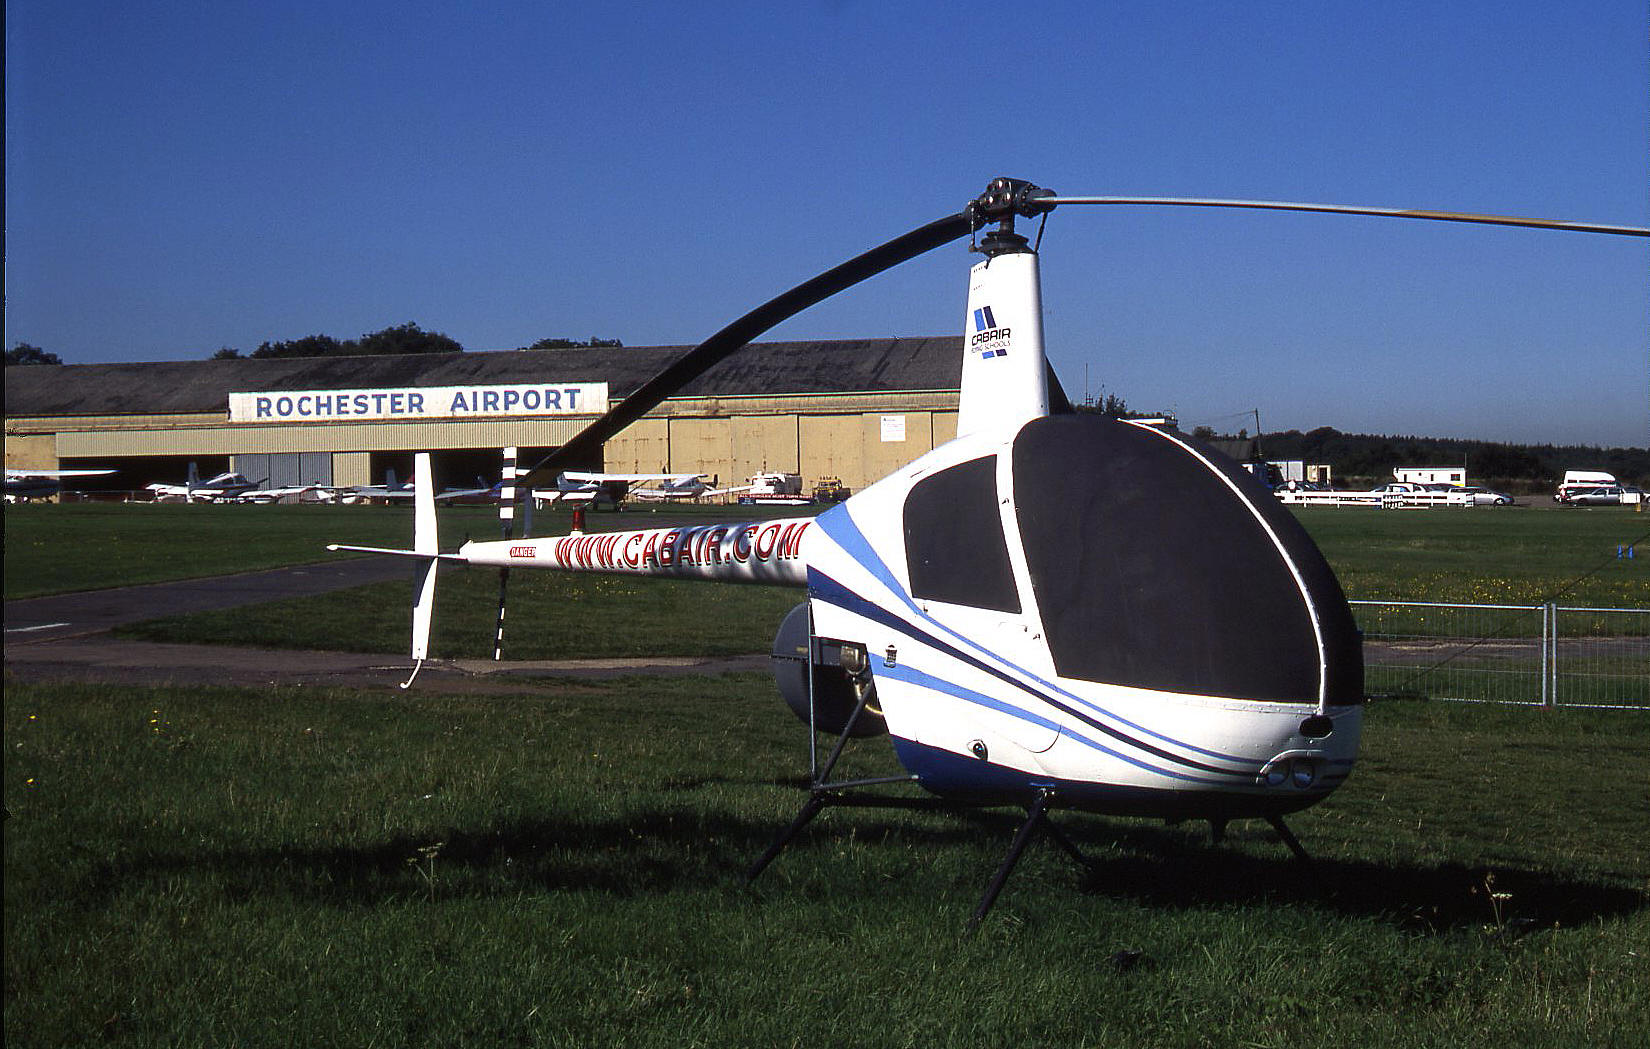 The Robinson R.22